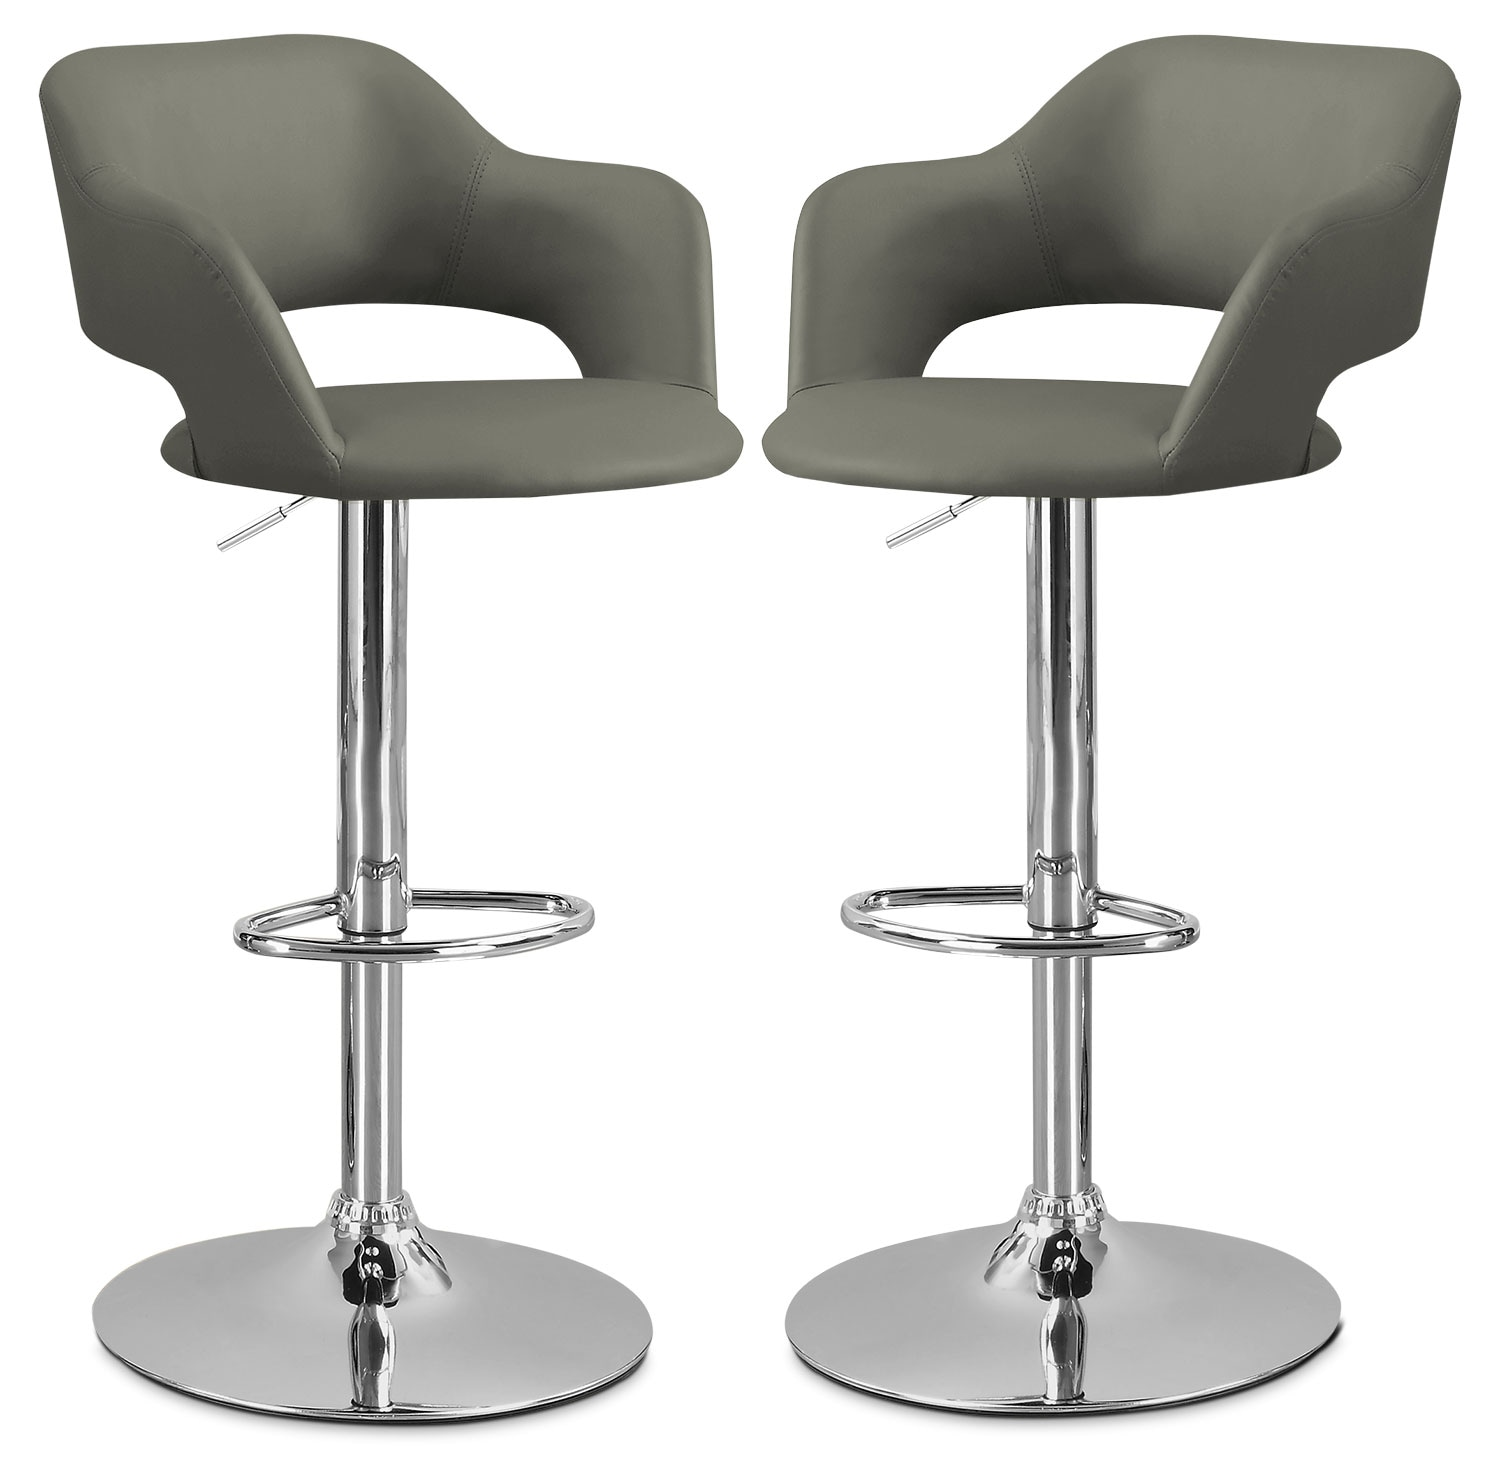 Contemporary Furniture And Stools: Monarch Hydraulic Contemporary Bar Stool, Set Of 2